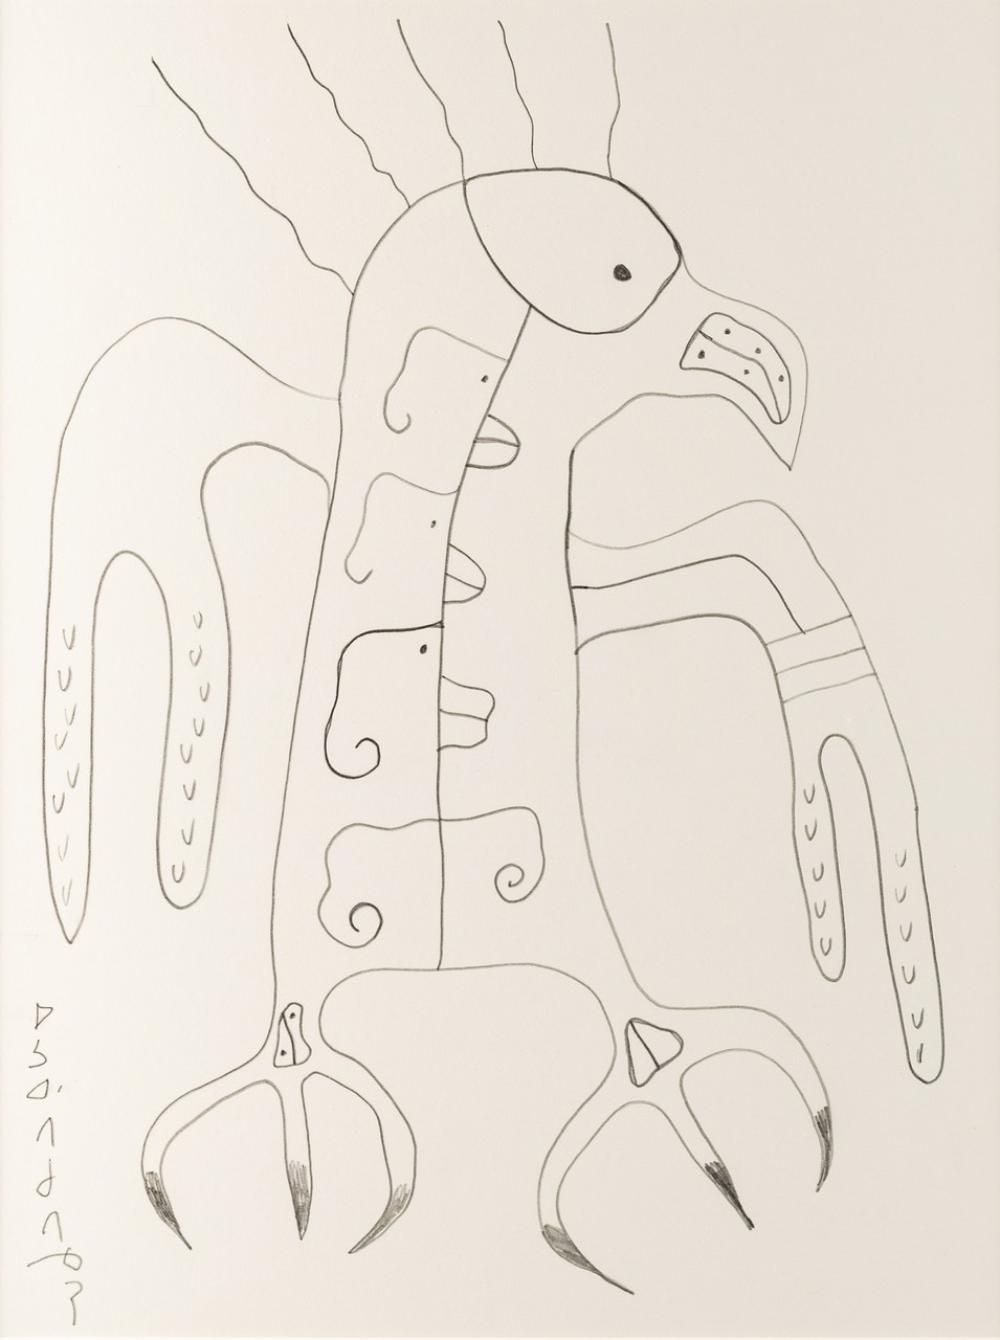 Norval Morrisseau, Canadian (1932-2007), Untitled - Bird, pencil on paper, 16 x 12 in. (41 x 30.5 cm)